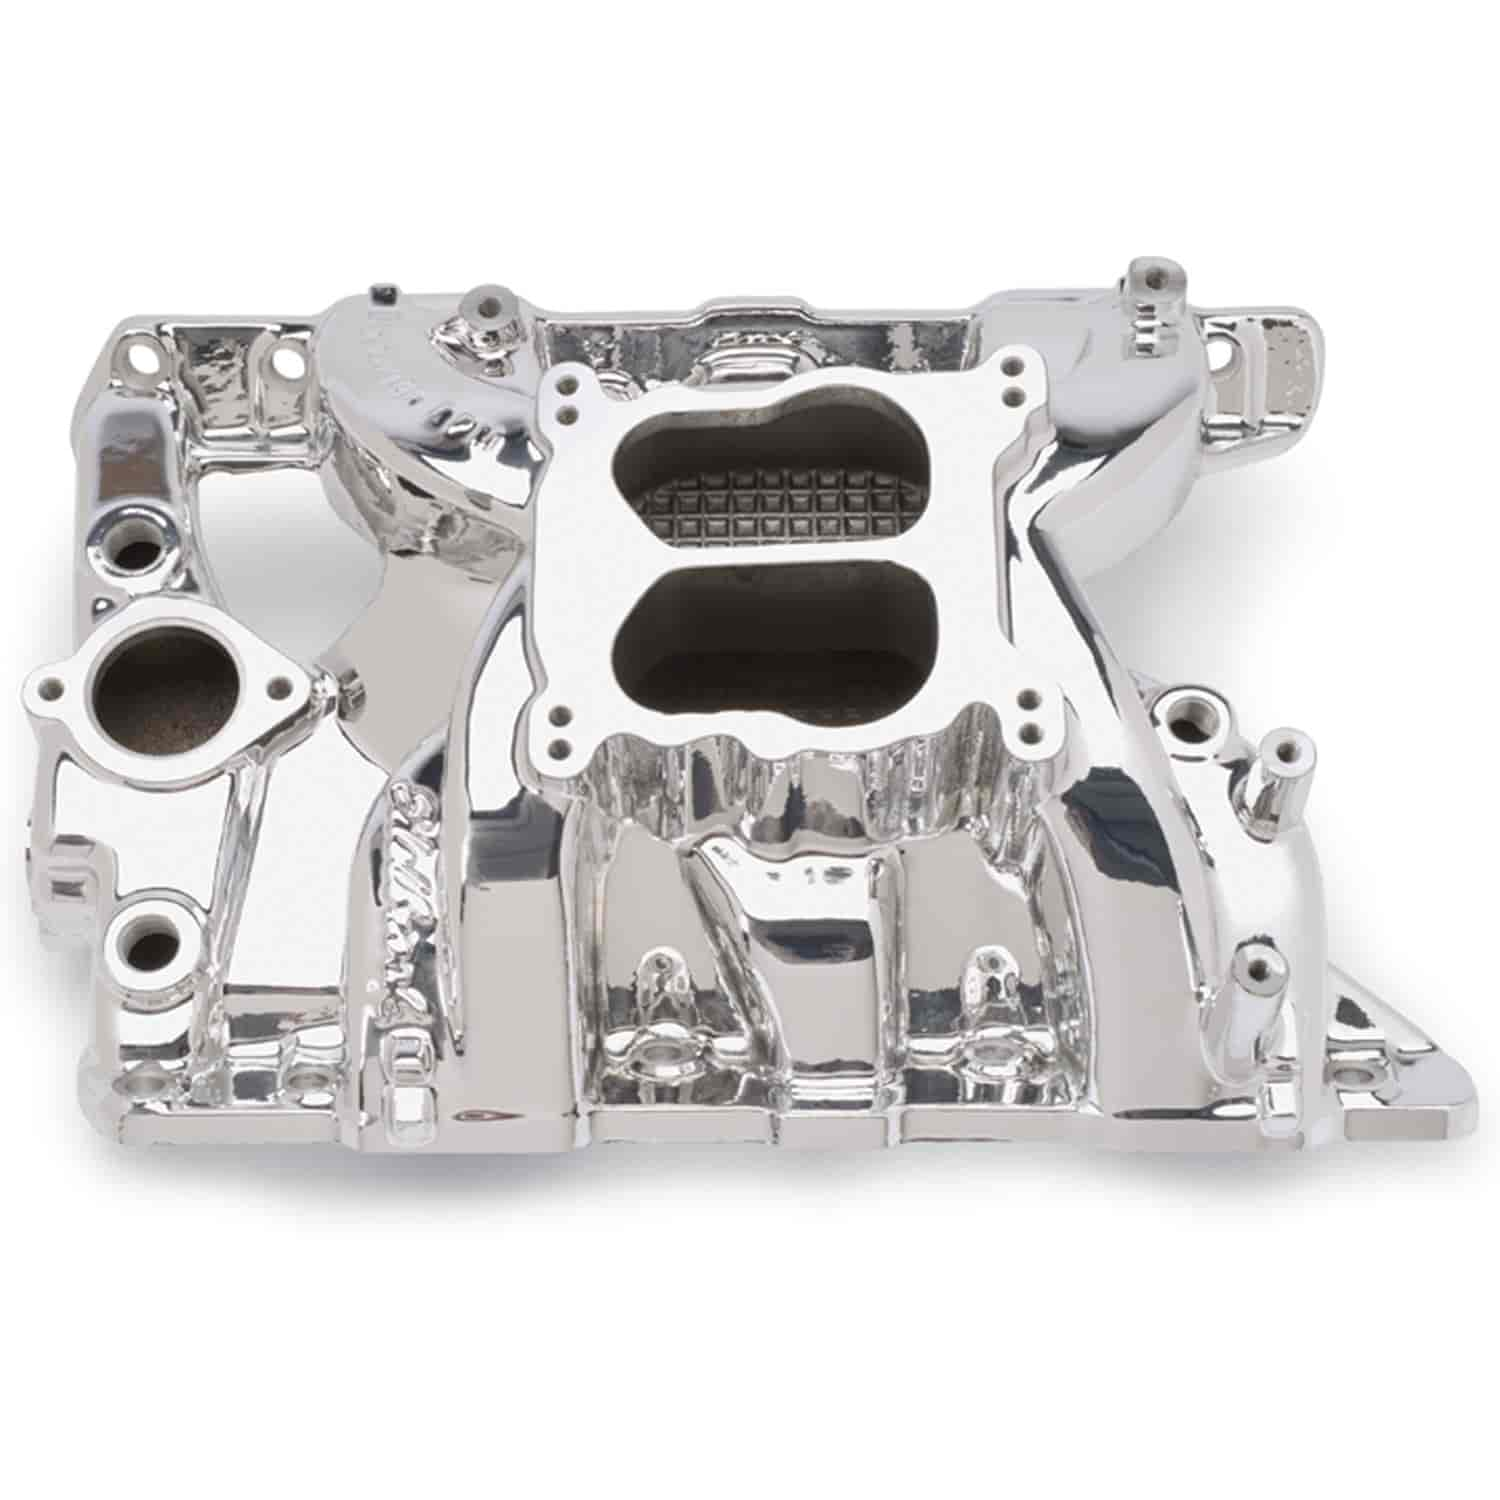 Edelbrock 71564 - Edelbrock Performer RPM Manifolds & Kits for Pontiac